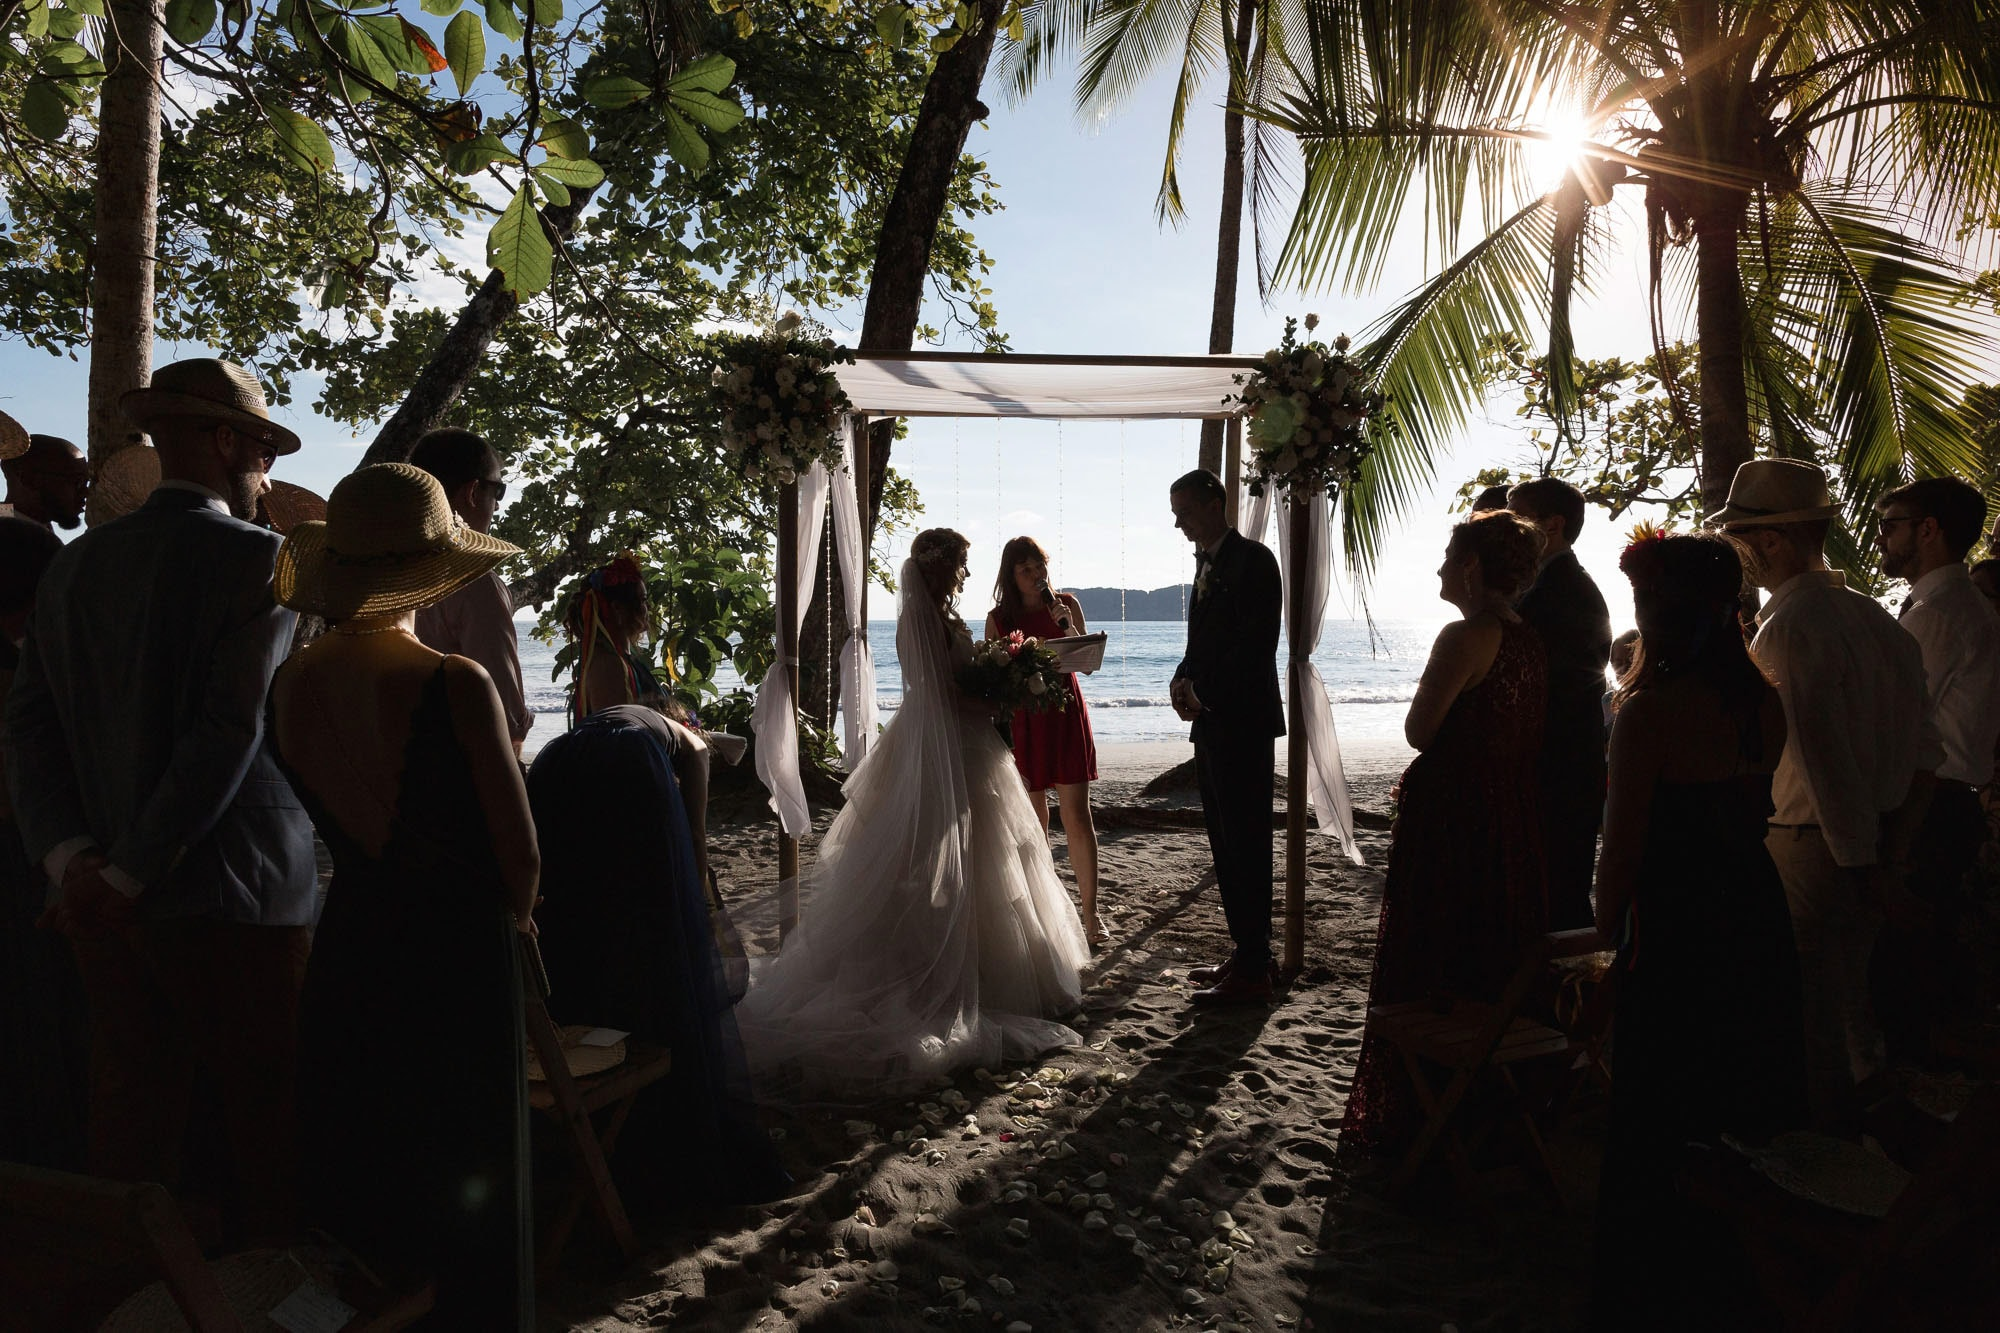 The ceremony setting: the beach, the ocean, and the sunset in the background.